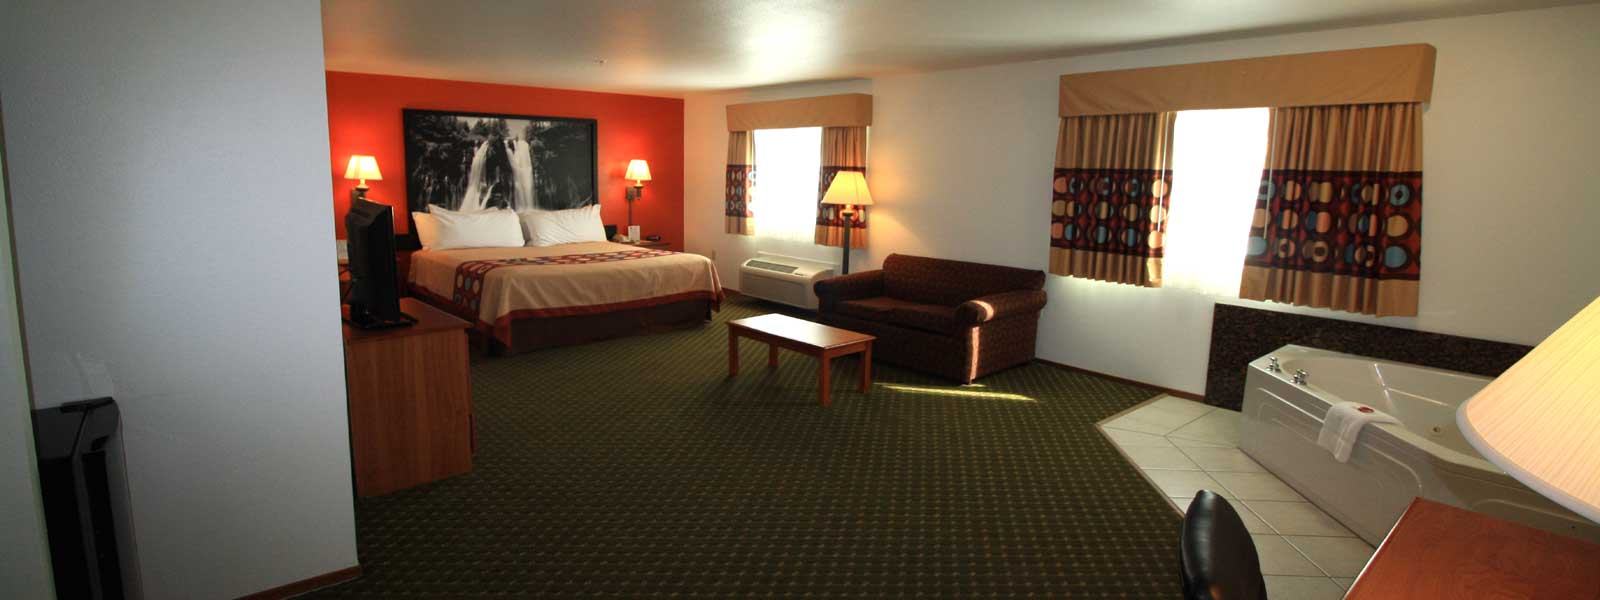 Super 8 Wine Country Sonoma Affordable Lodging In Cloverdale California Clean Comfortable Rooms Newly Remodeled Close